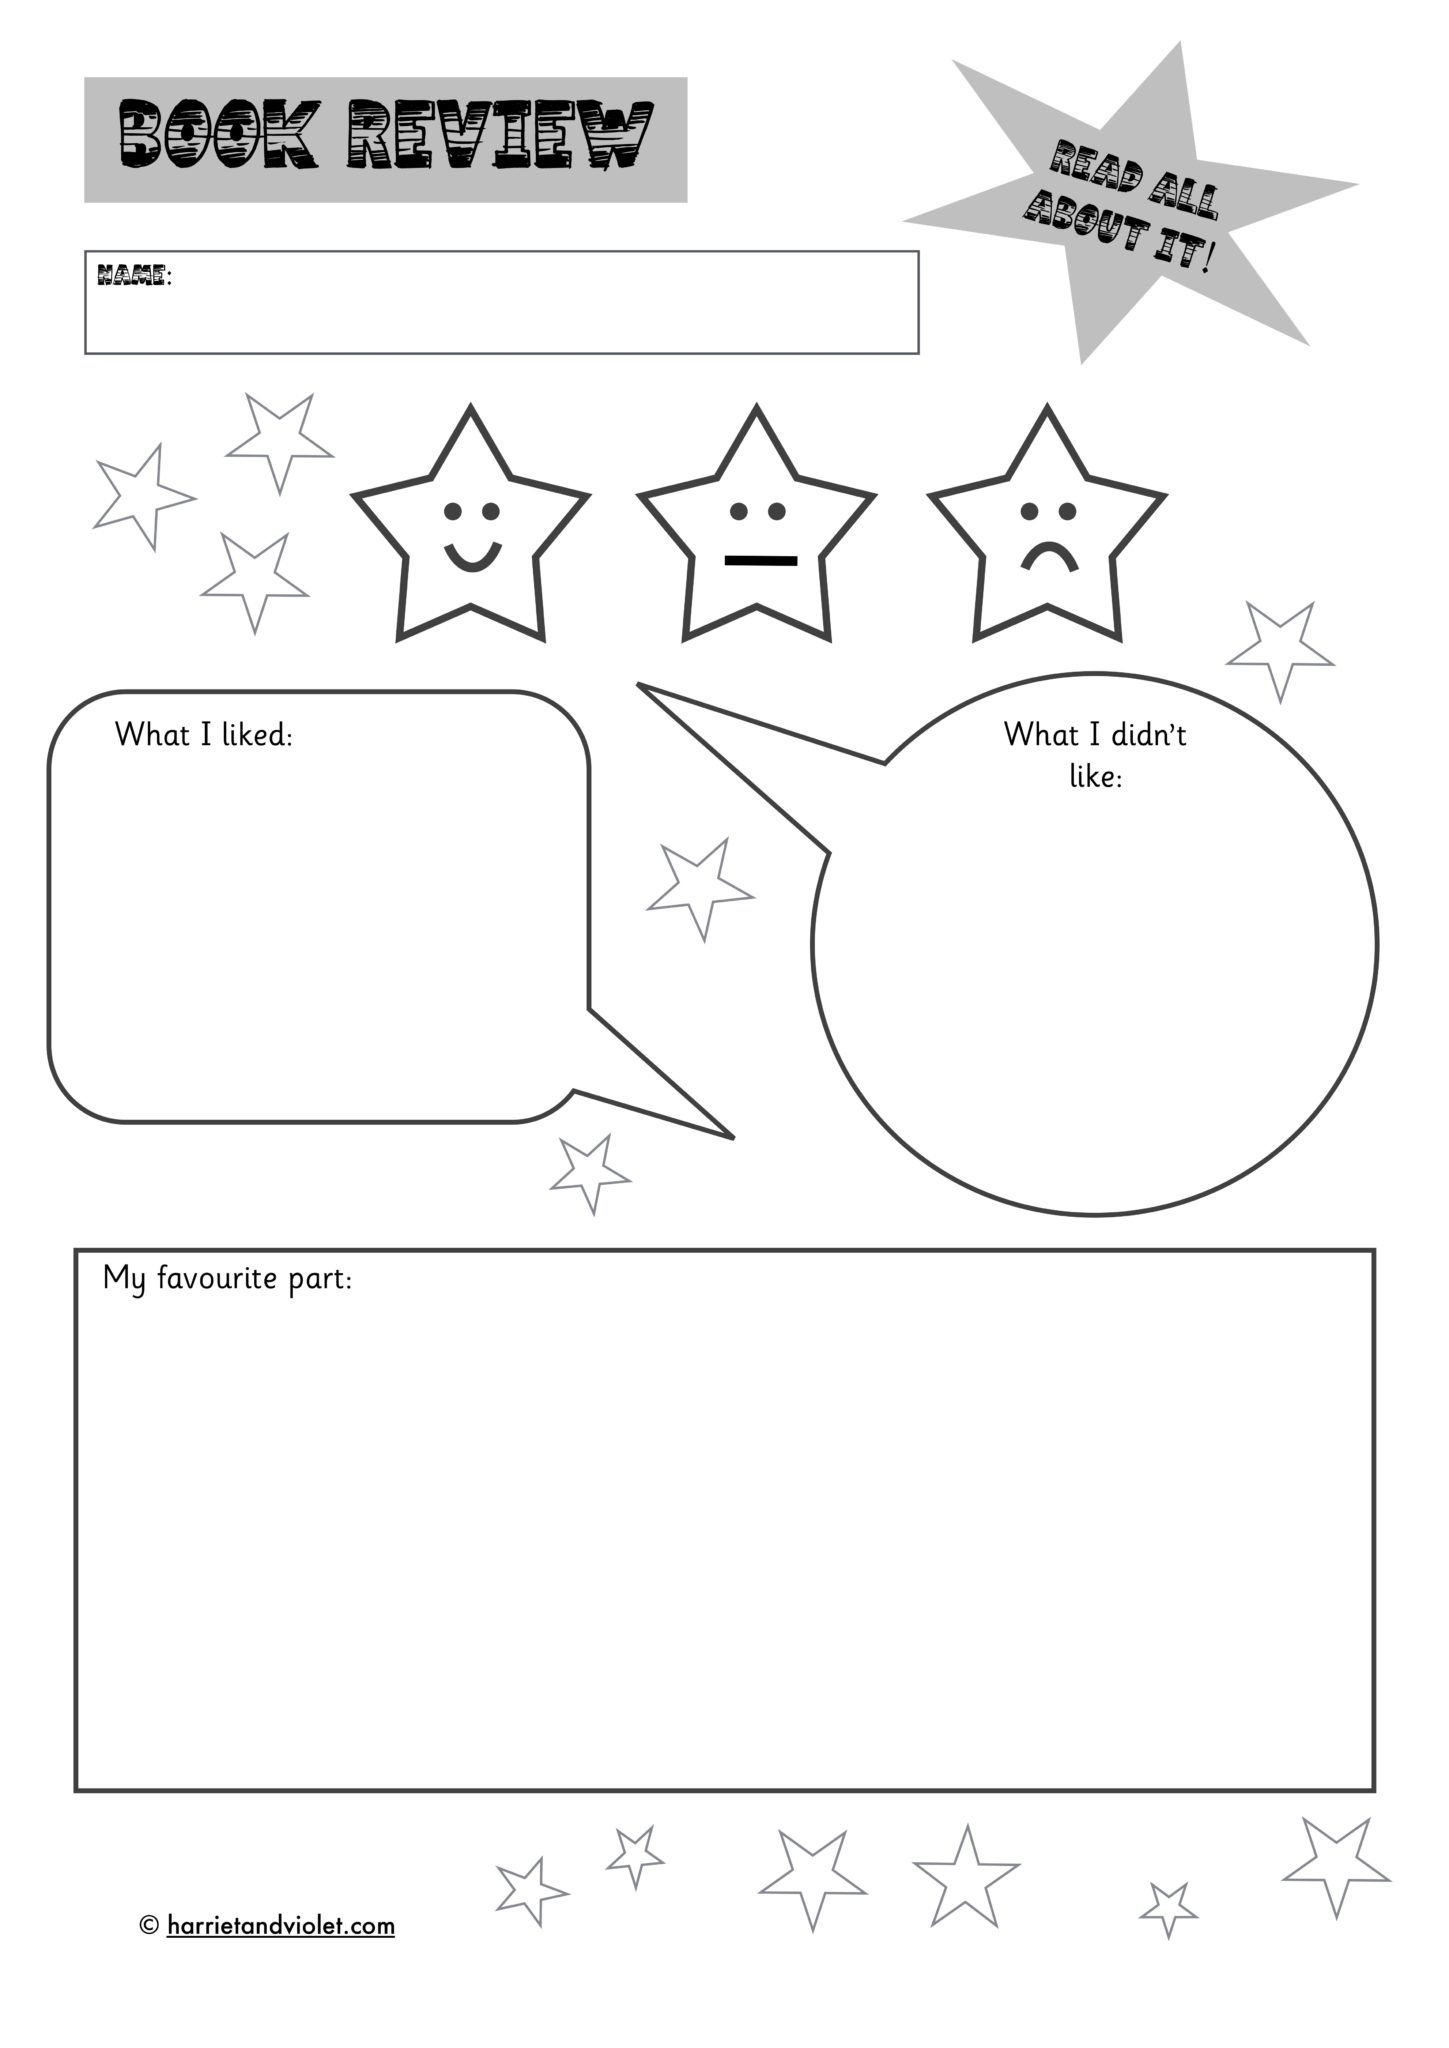 Book Review Eyfs A Book Review For Either Mark Making Or Drawing Share In Your Book Corner A Free Teaching Resource Free Teaching Resources Book Corners Eyfs